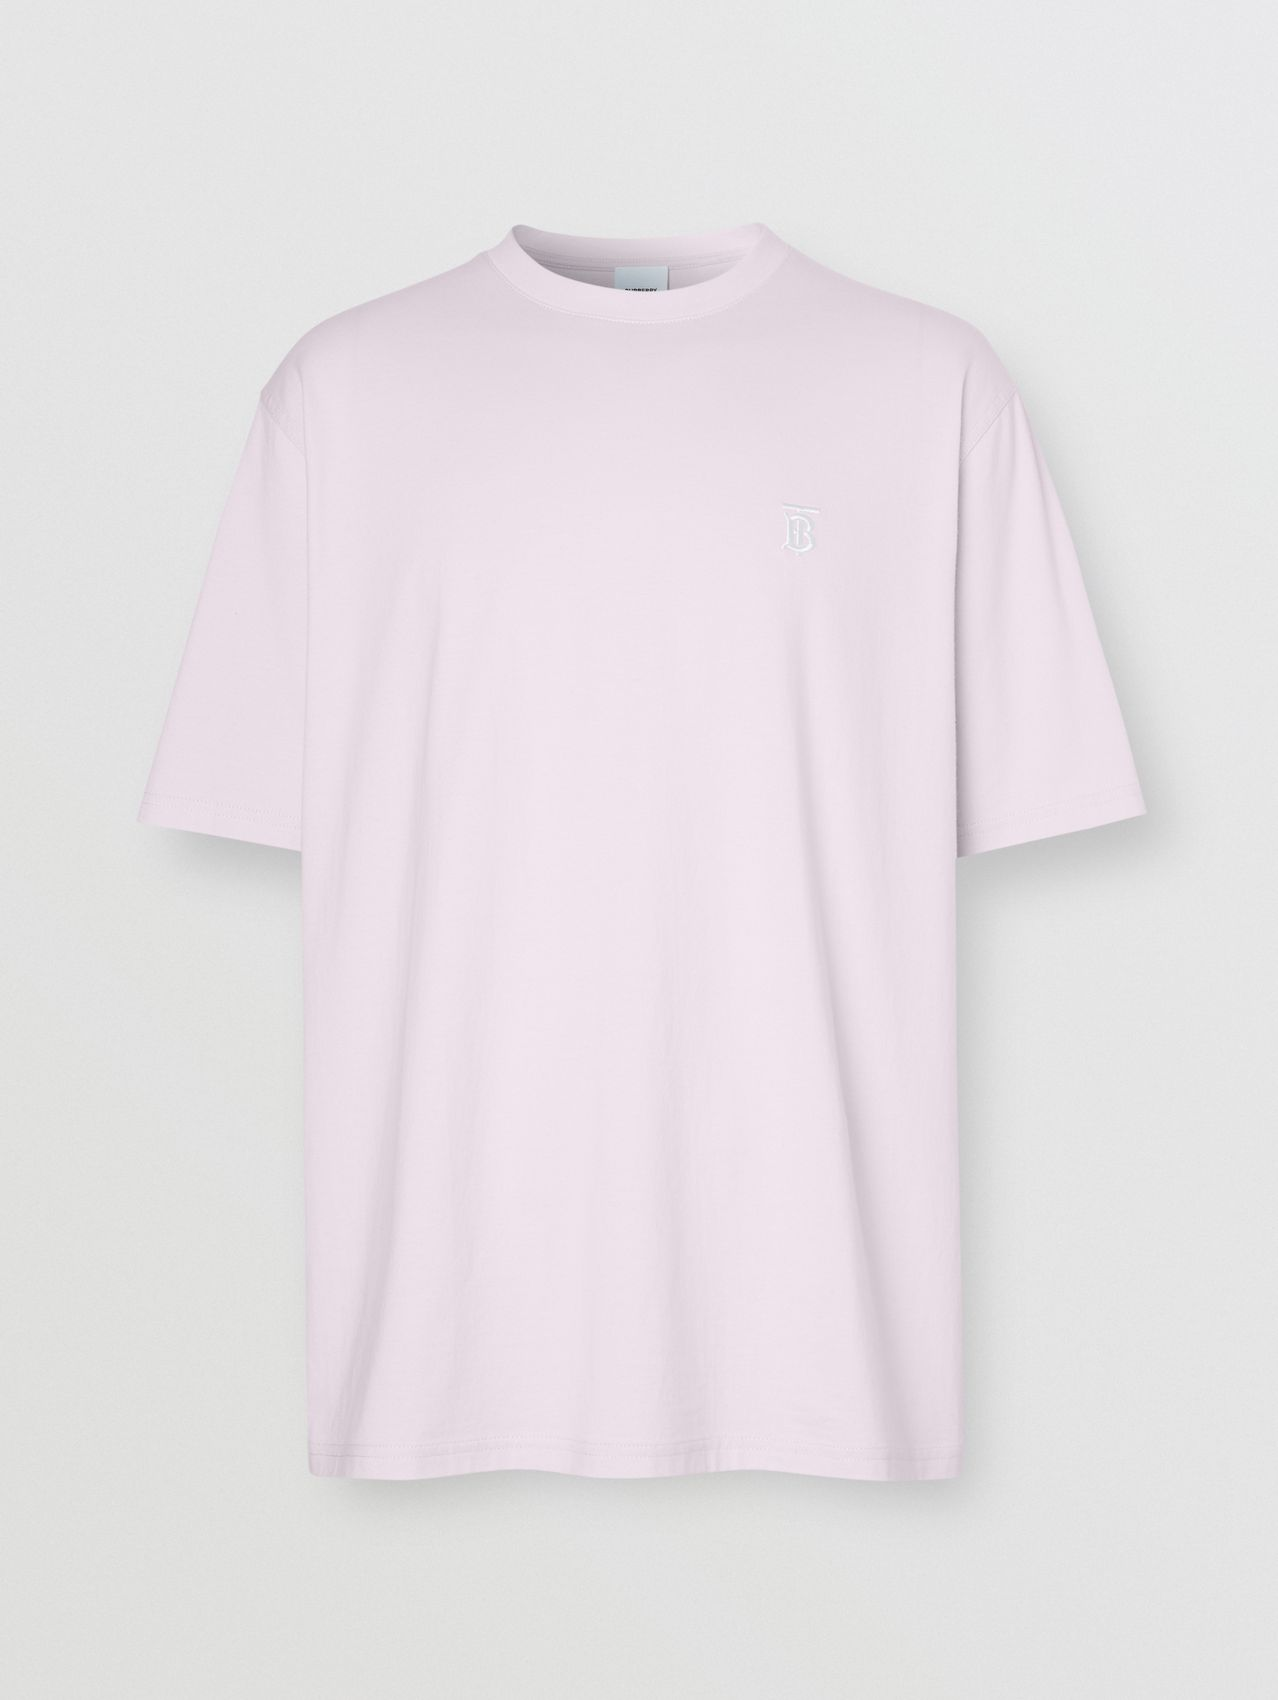 Monogram Motif Cotton T-shirt in Pale Thistle